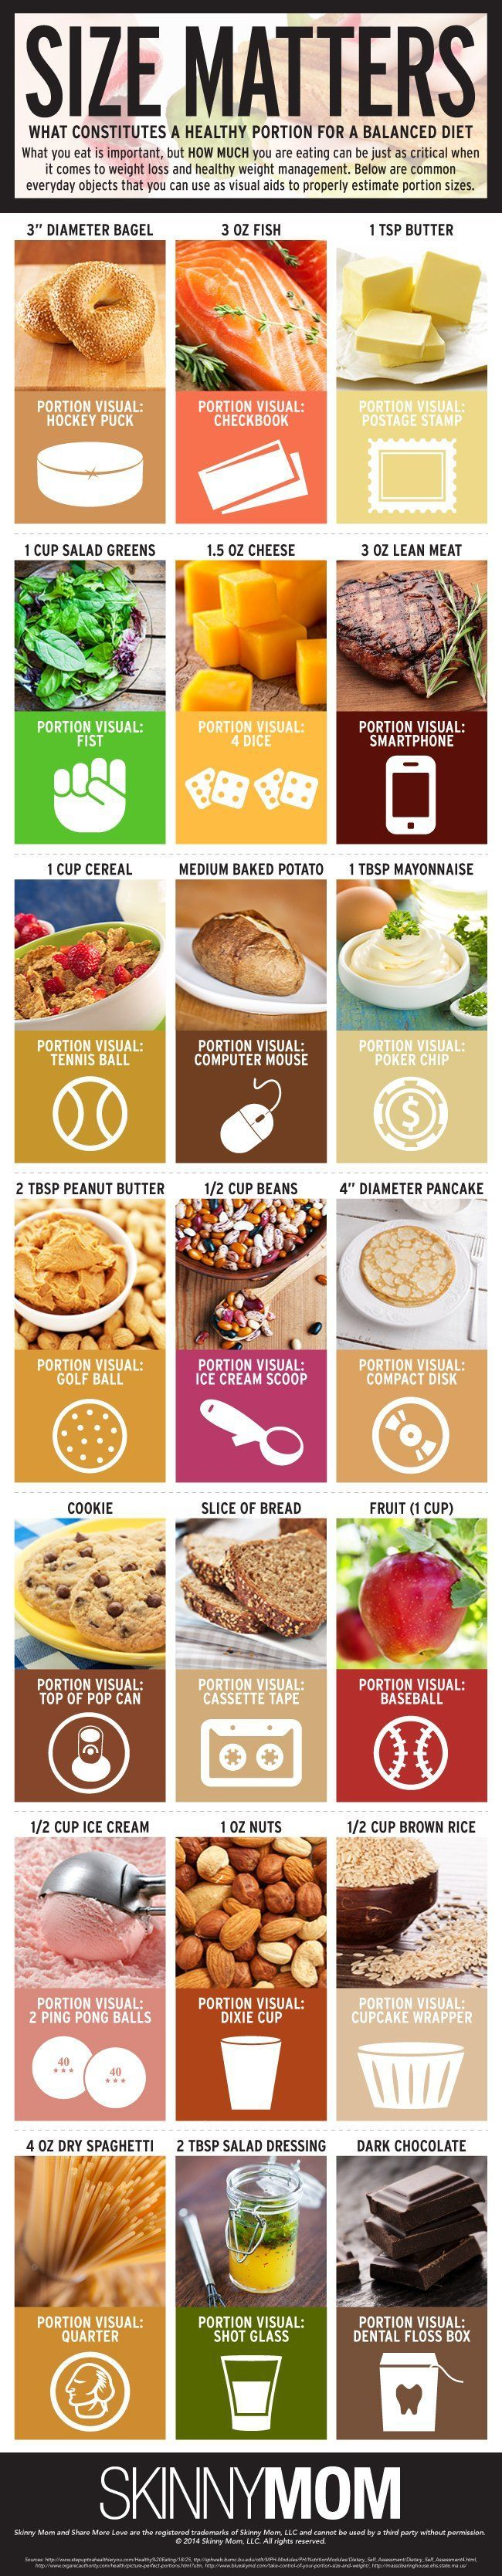 Food Proportions Portion distortion. [Infographic] - Fitness Life